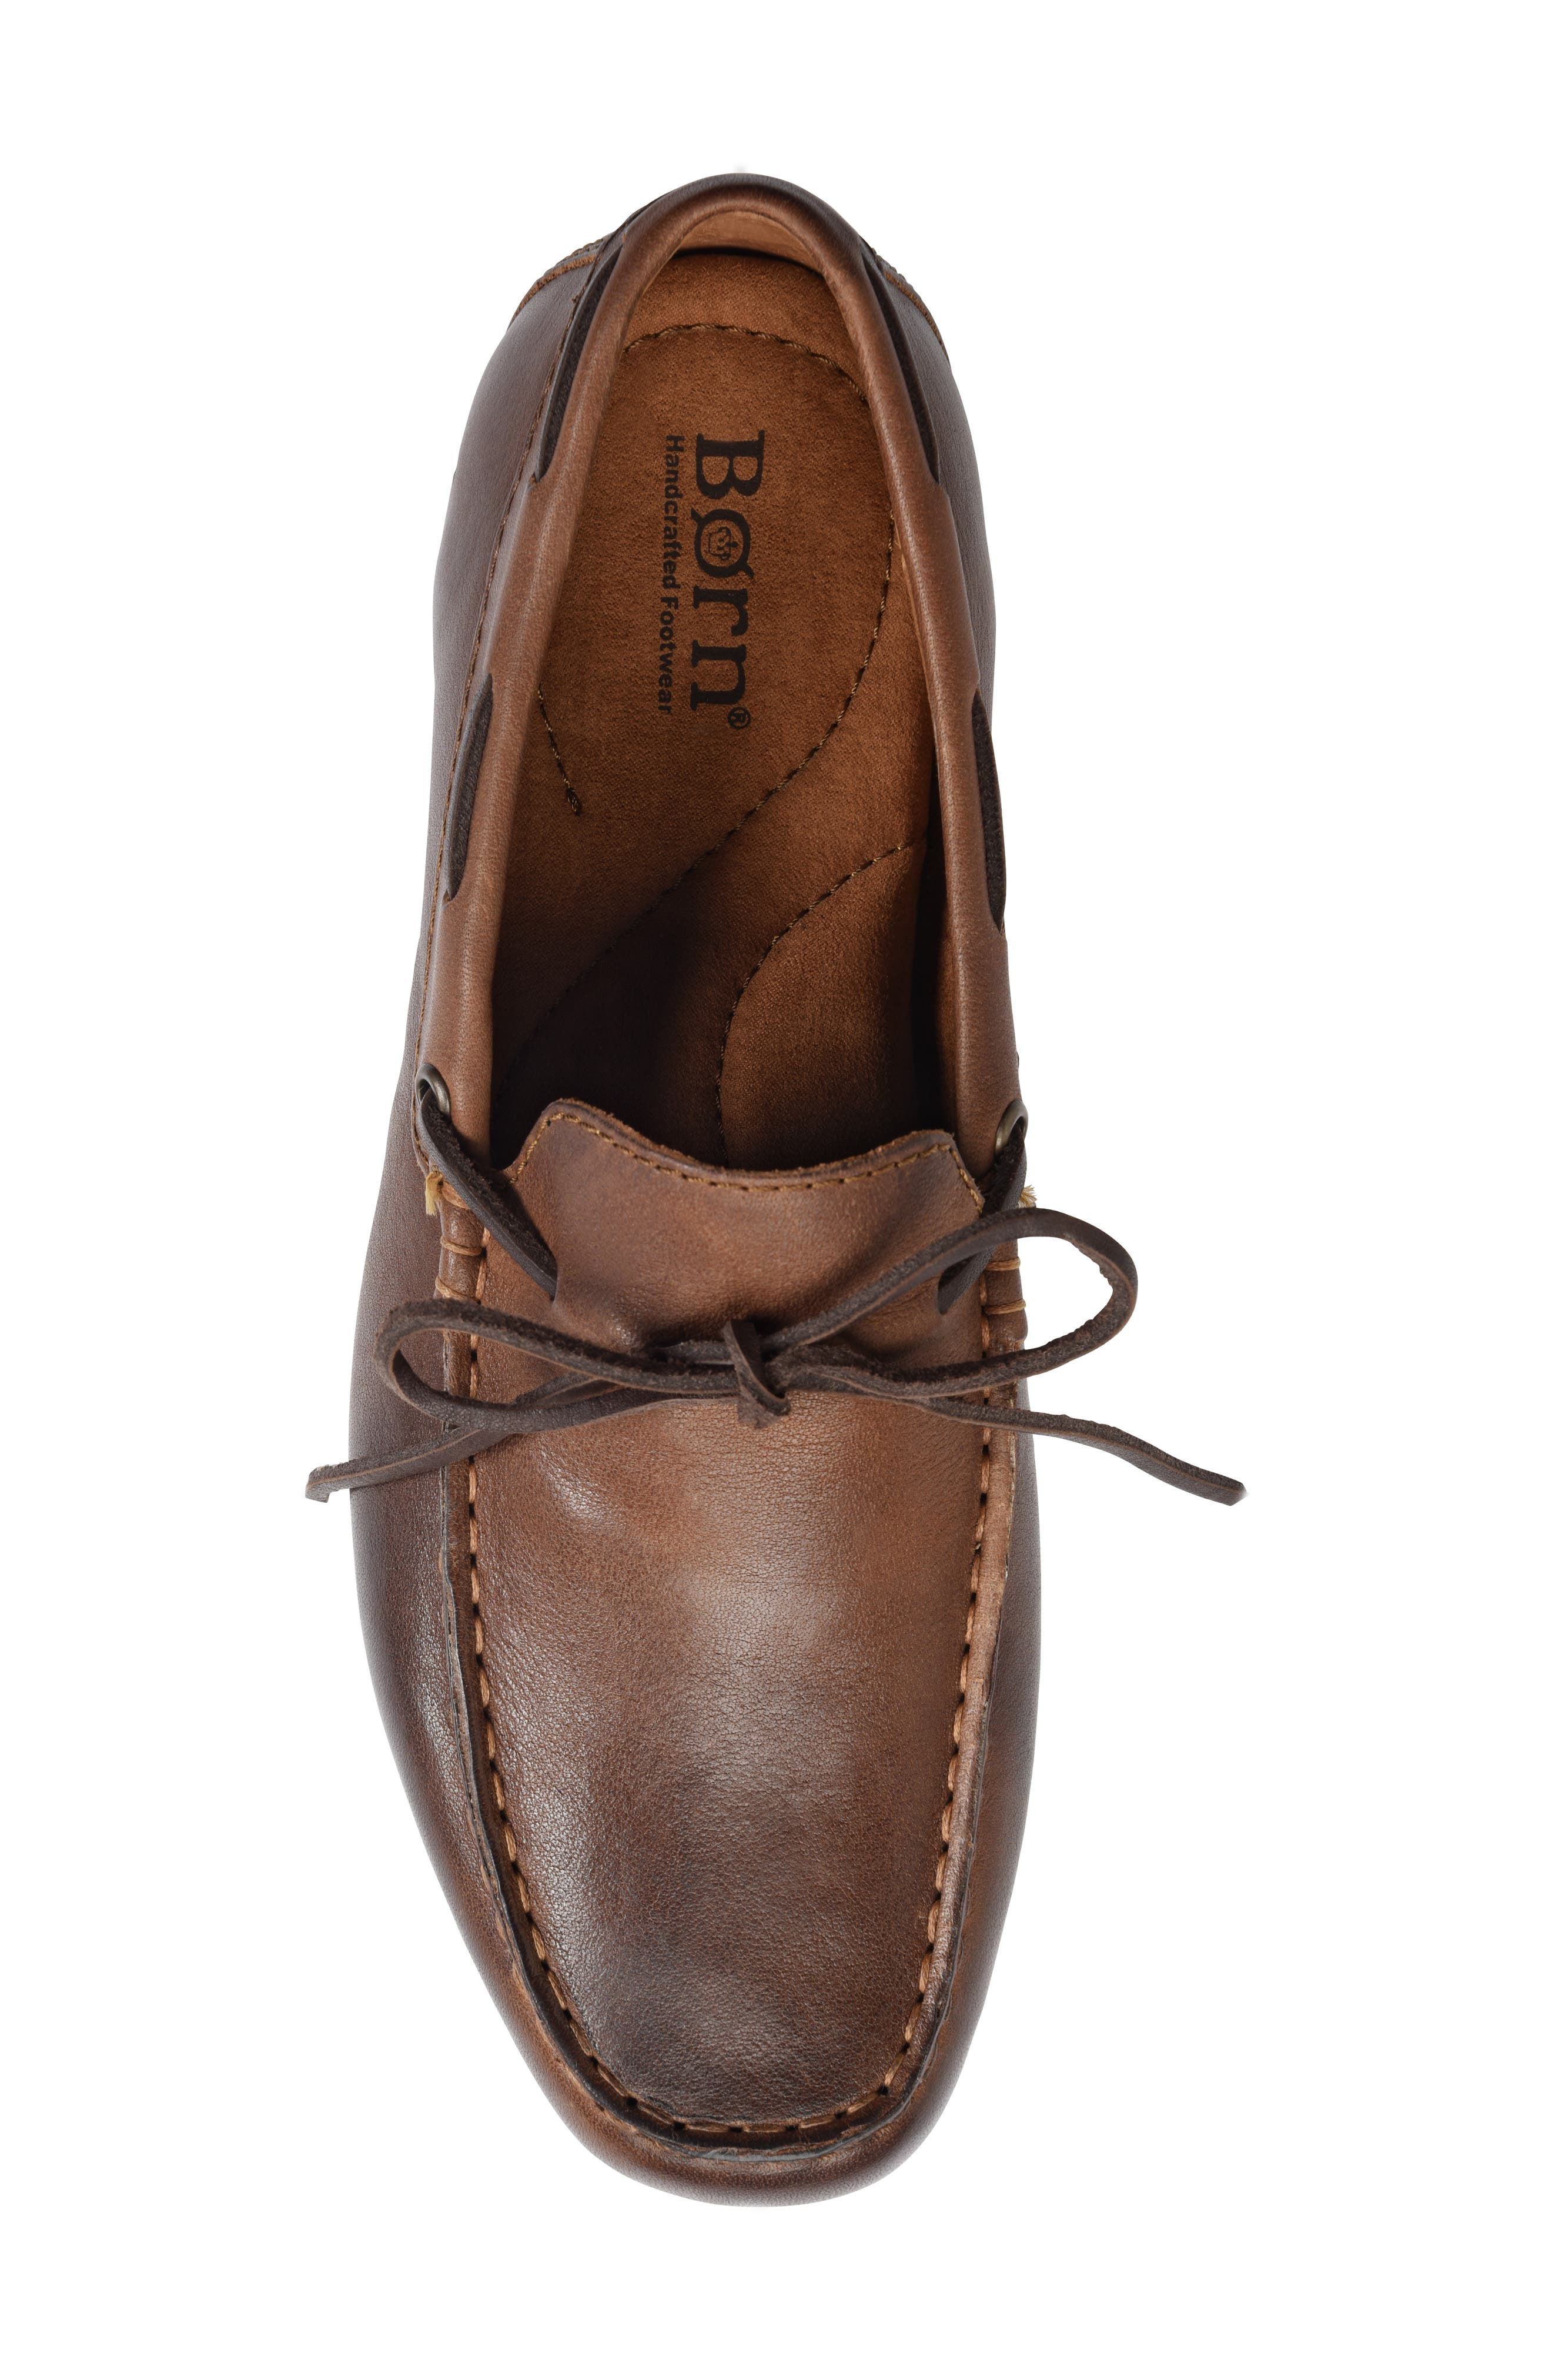 Virgo Driving Shoe,                             Alternate thumbnail 5, color,                             BROWN/BROWN LEATHER